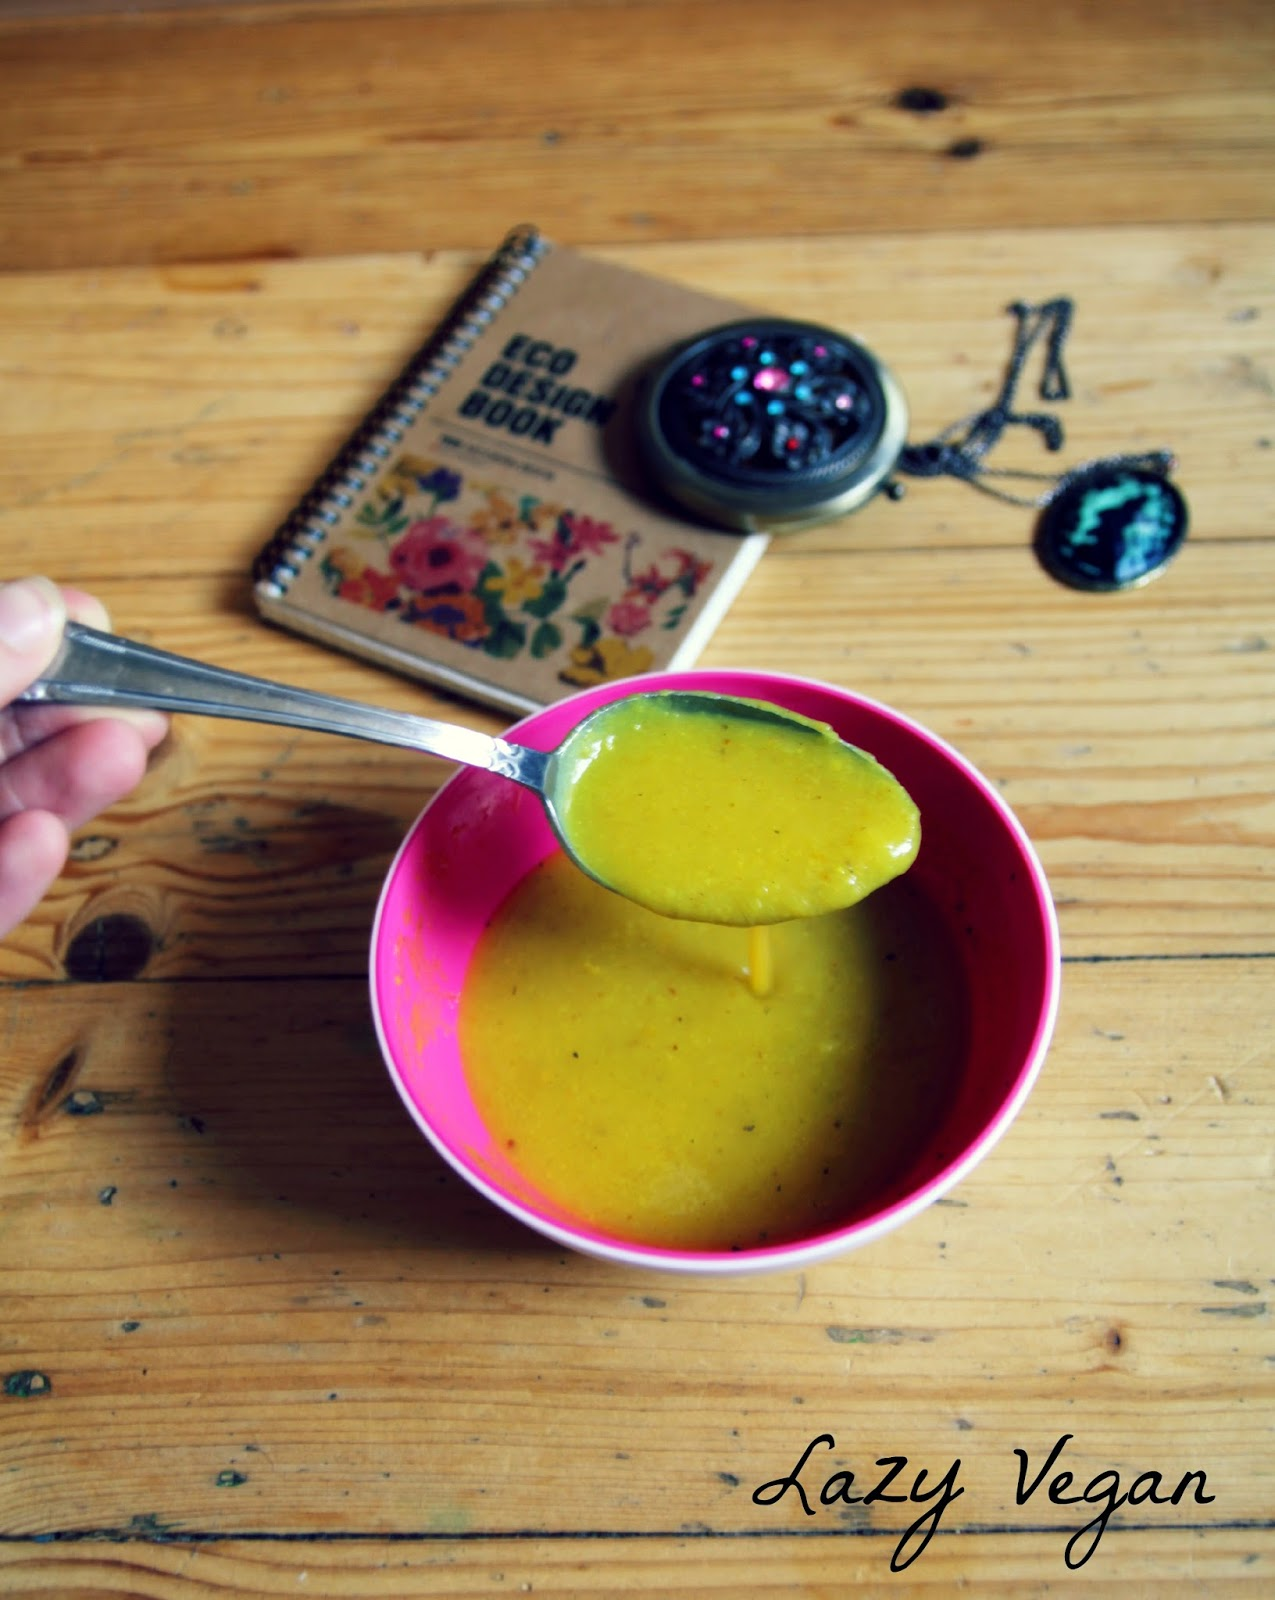 Soup, Creamy soup, Vegan, Gluten-free, Cauliflower, Vegetables, Plant-based,